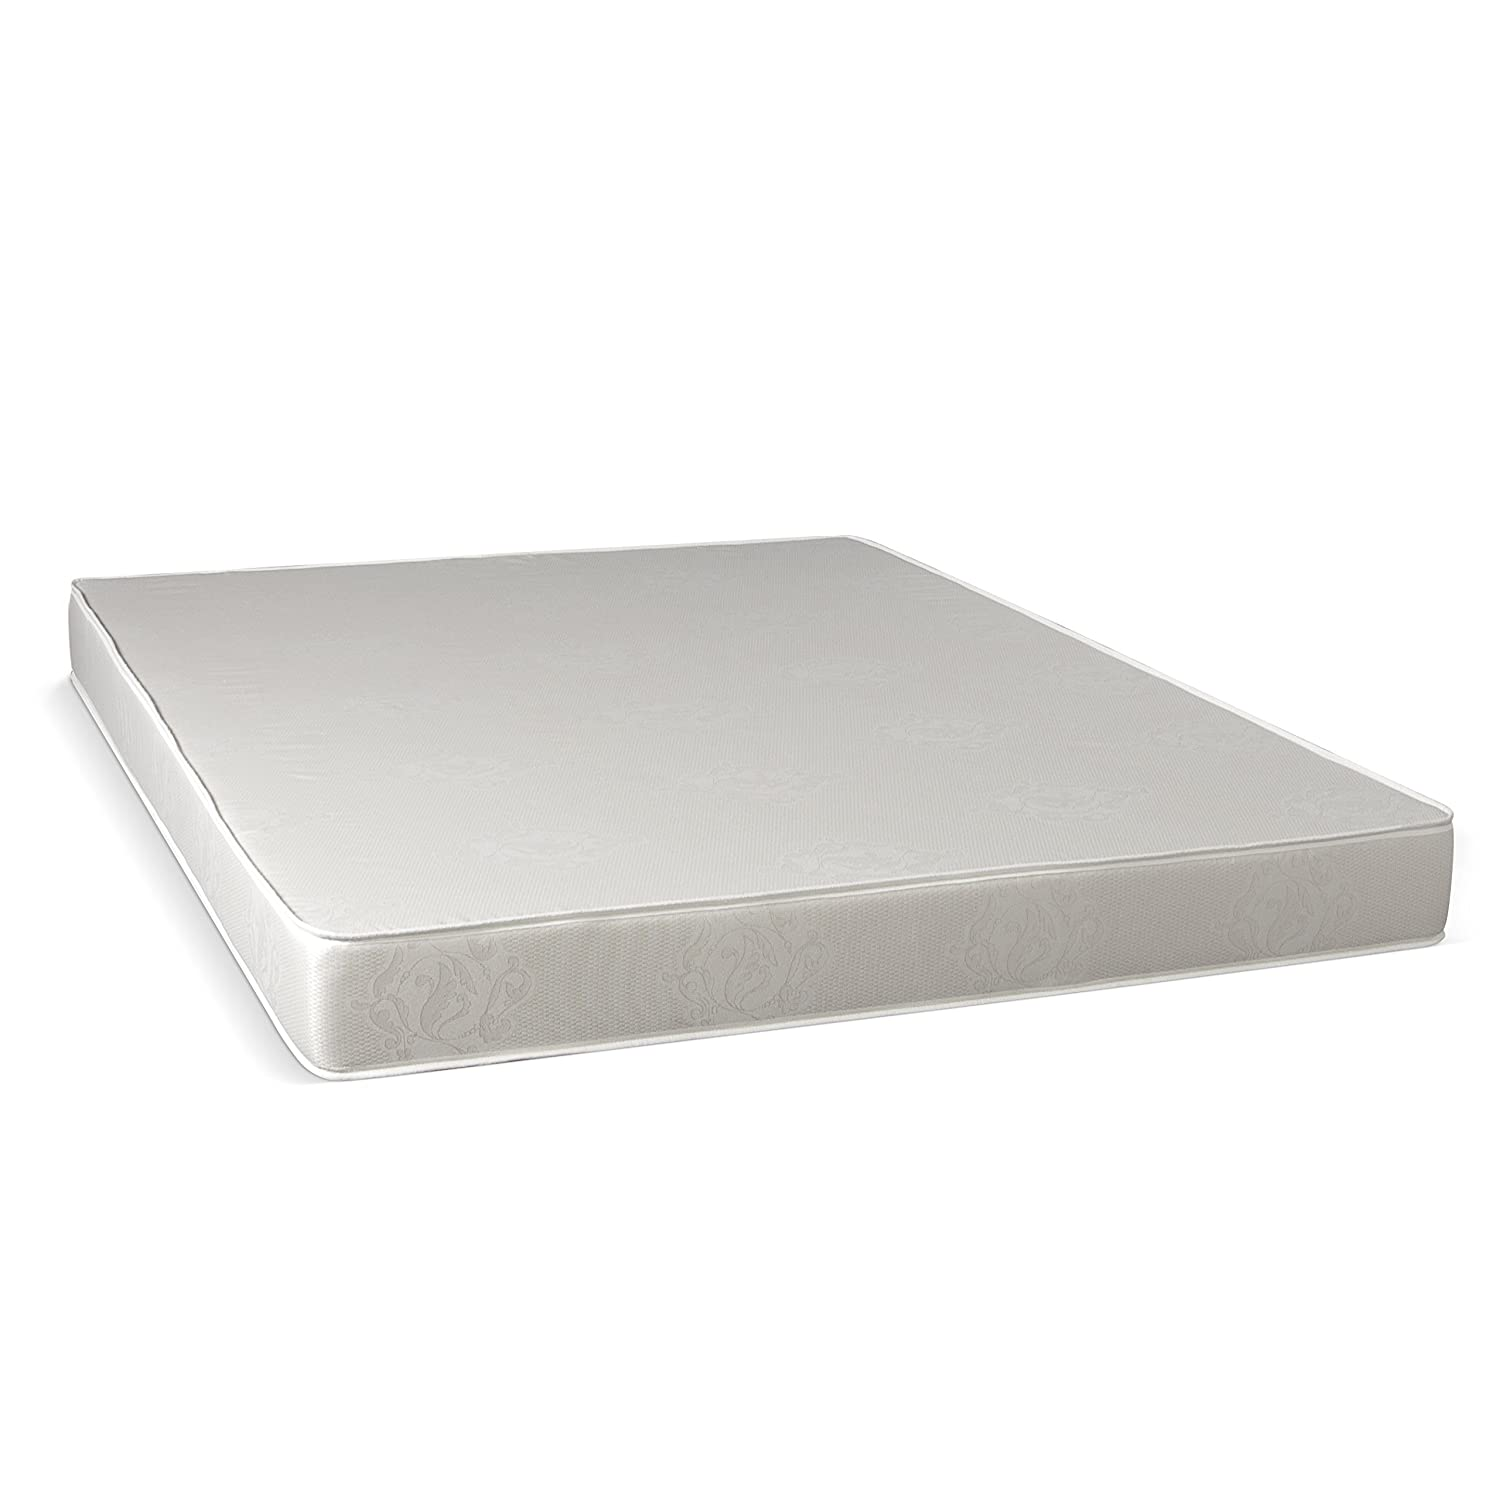 inc components rv mattress dimensions queen foam lippert memory premier